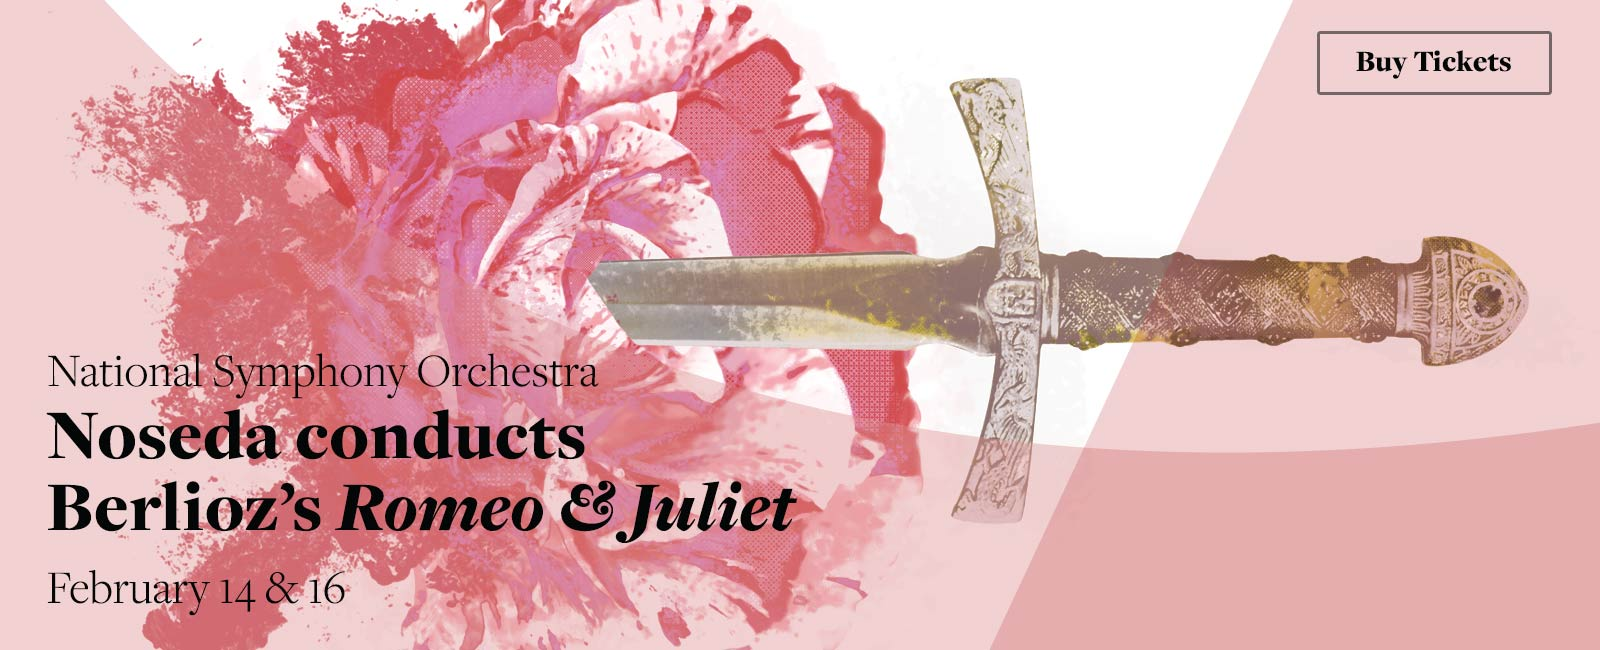 National Symphony Orchestra: Noseda conducts Berlioz's Romeo & Juliet